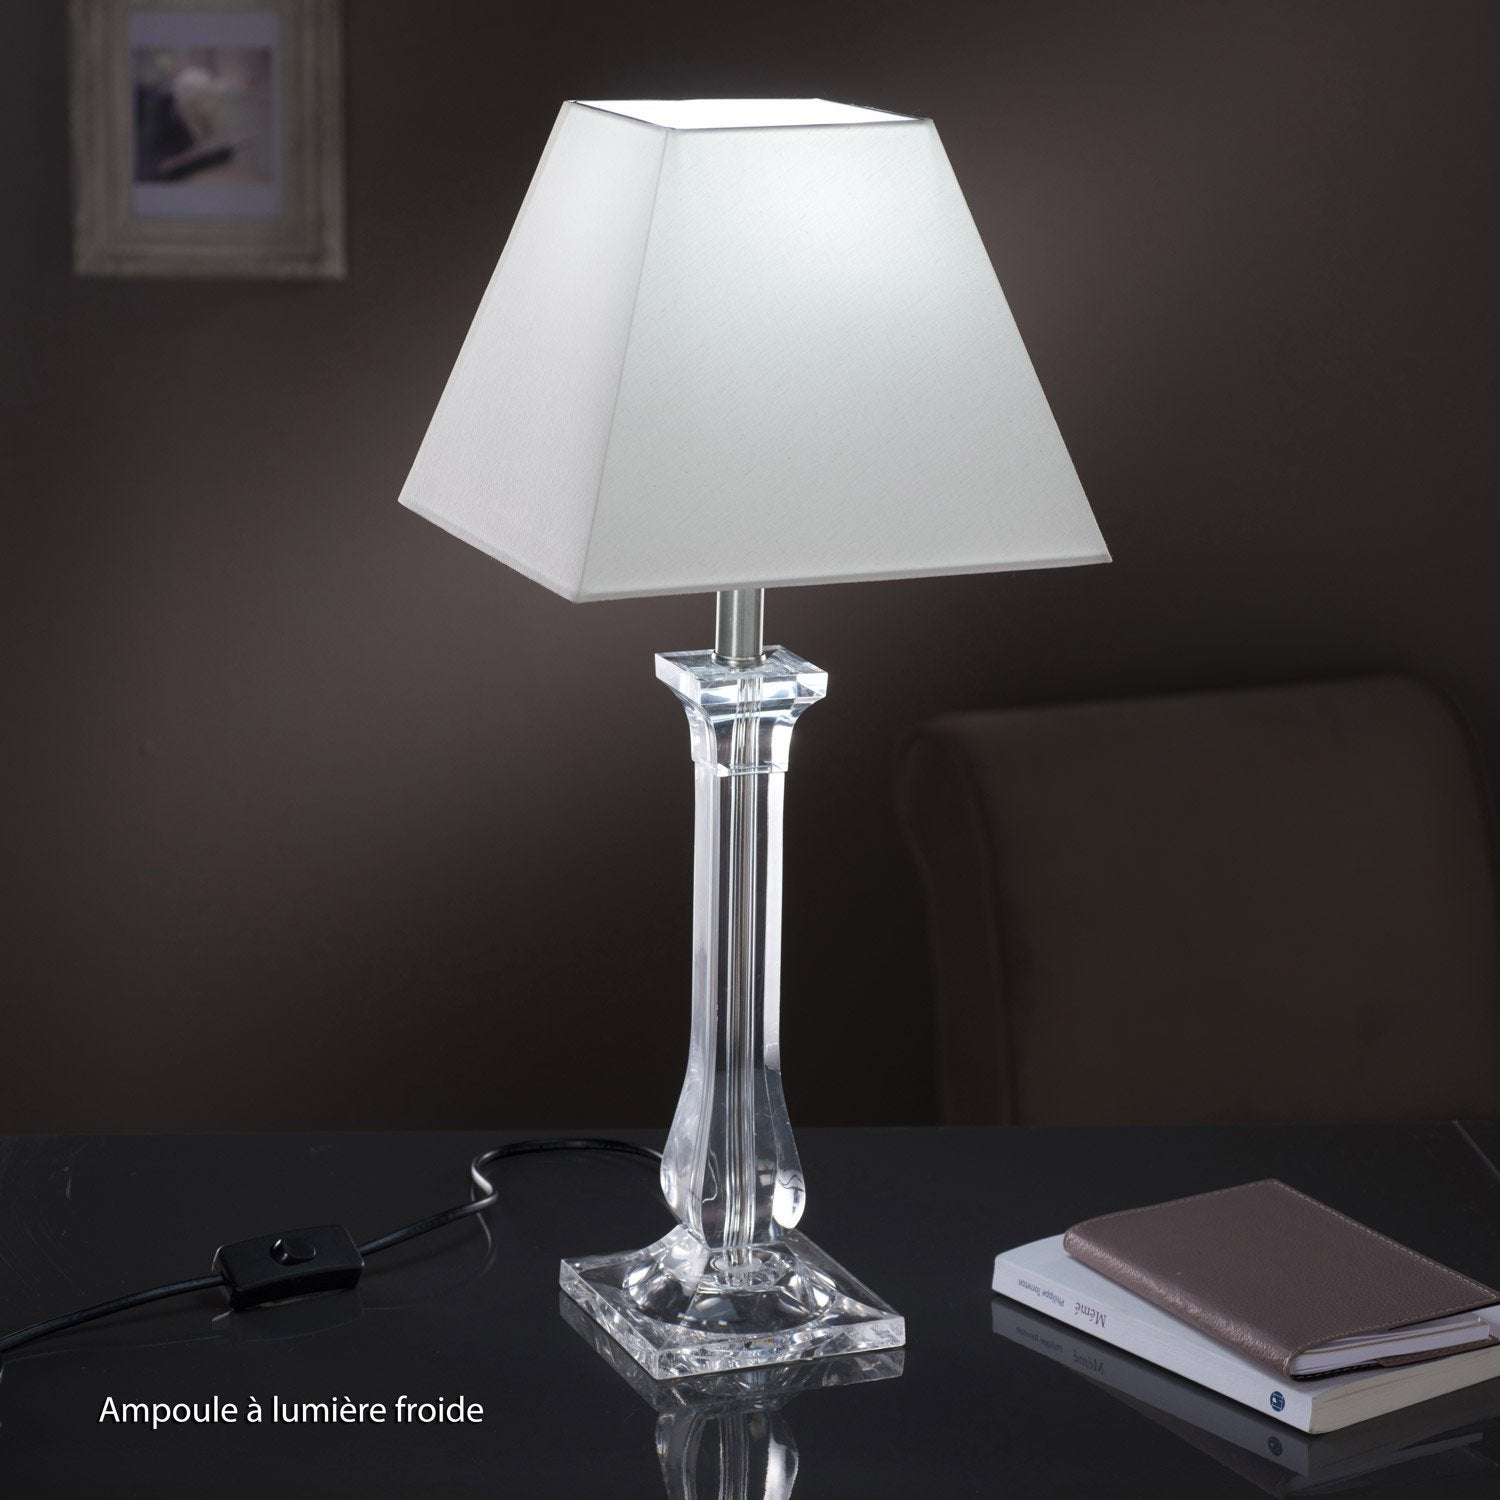 Pied de lampe fantasy acrylique transparent 39 cm - Table pour lampe de salon ...